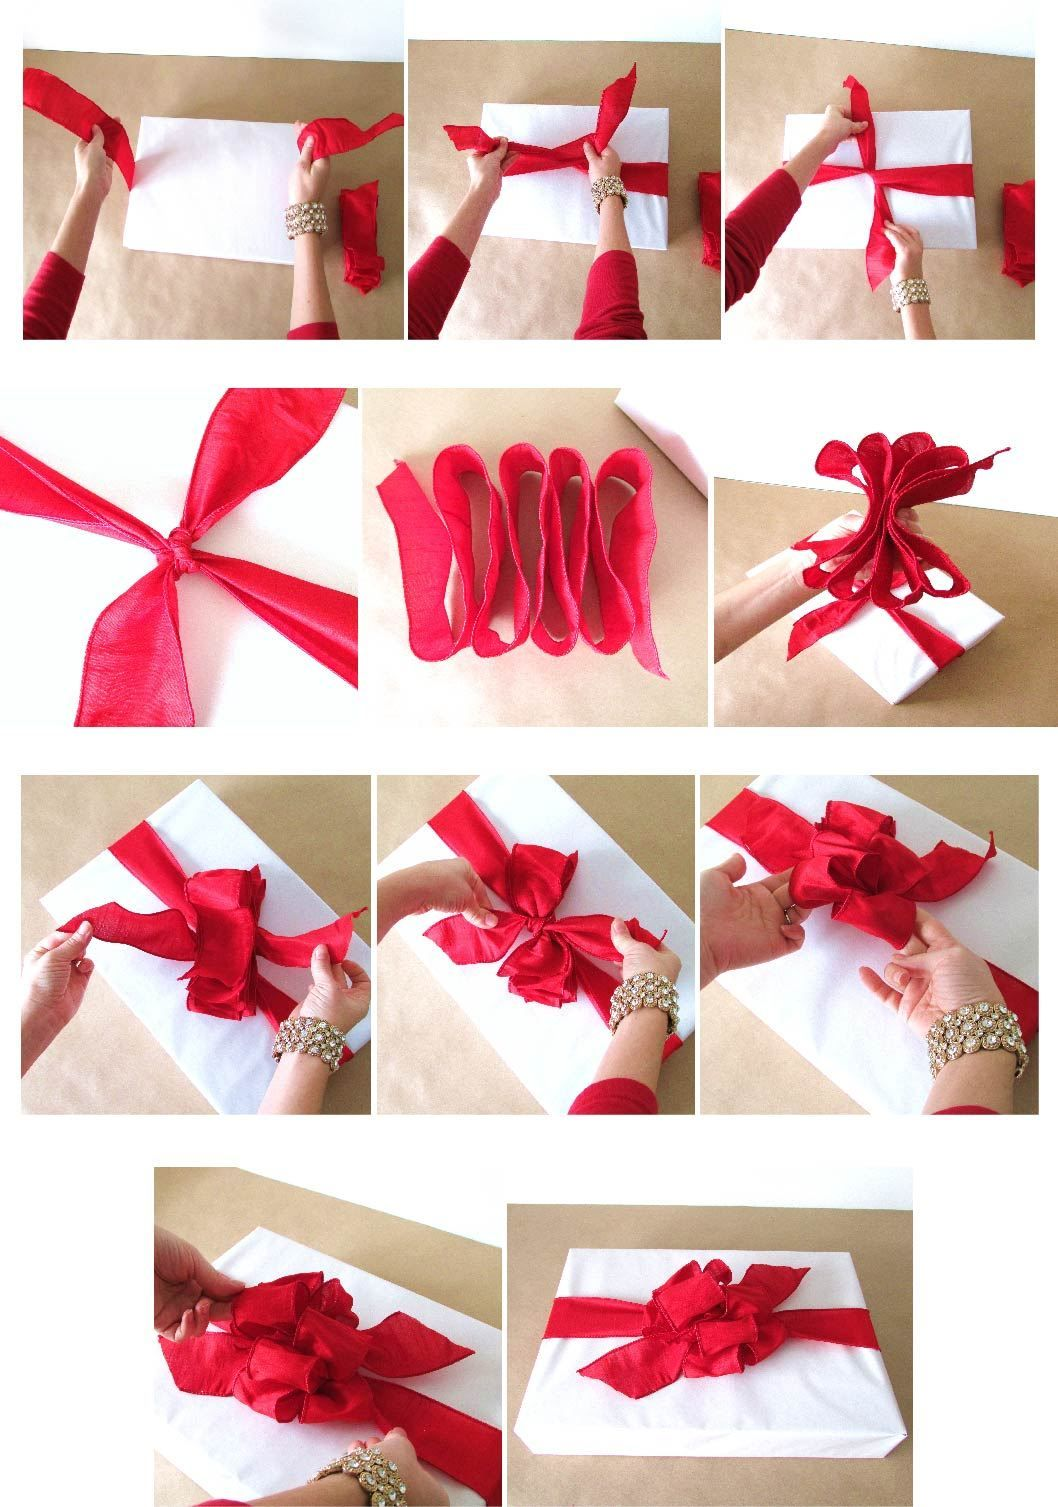 How To The Poufy Bow Gift Giving Gift Wrapping Gifts